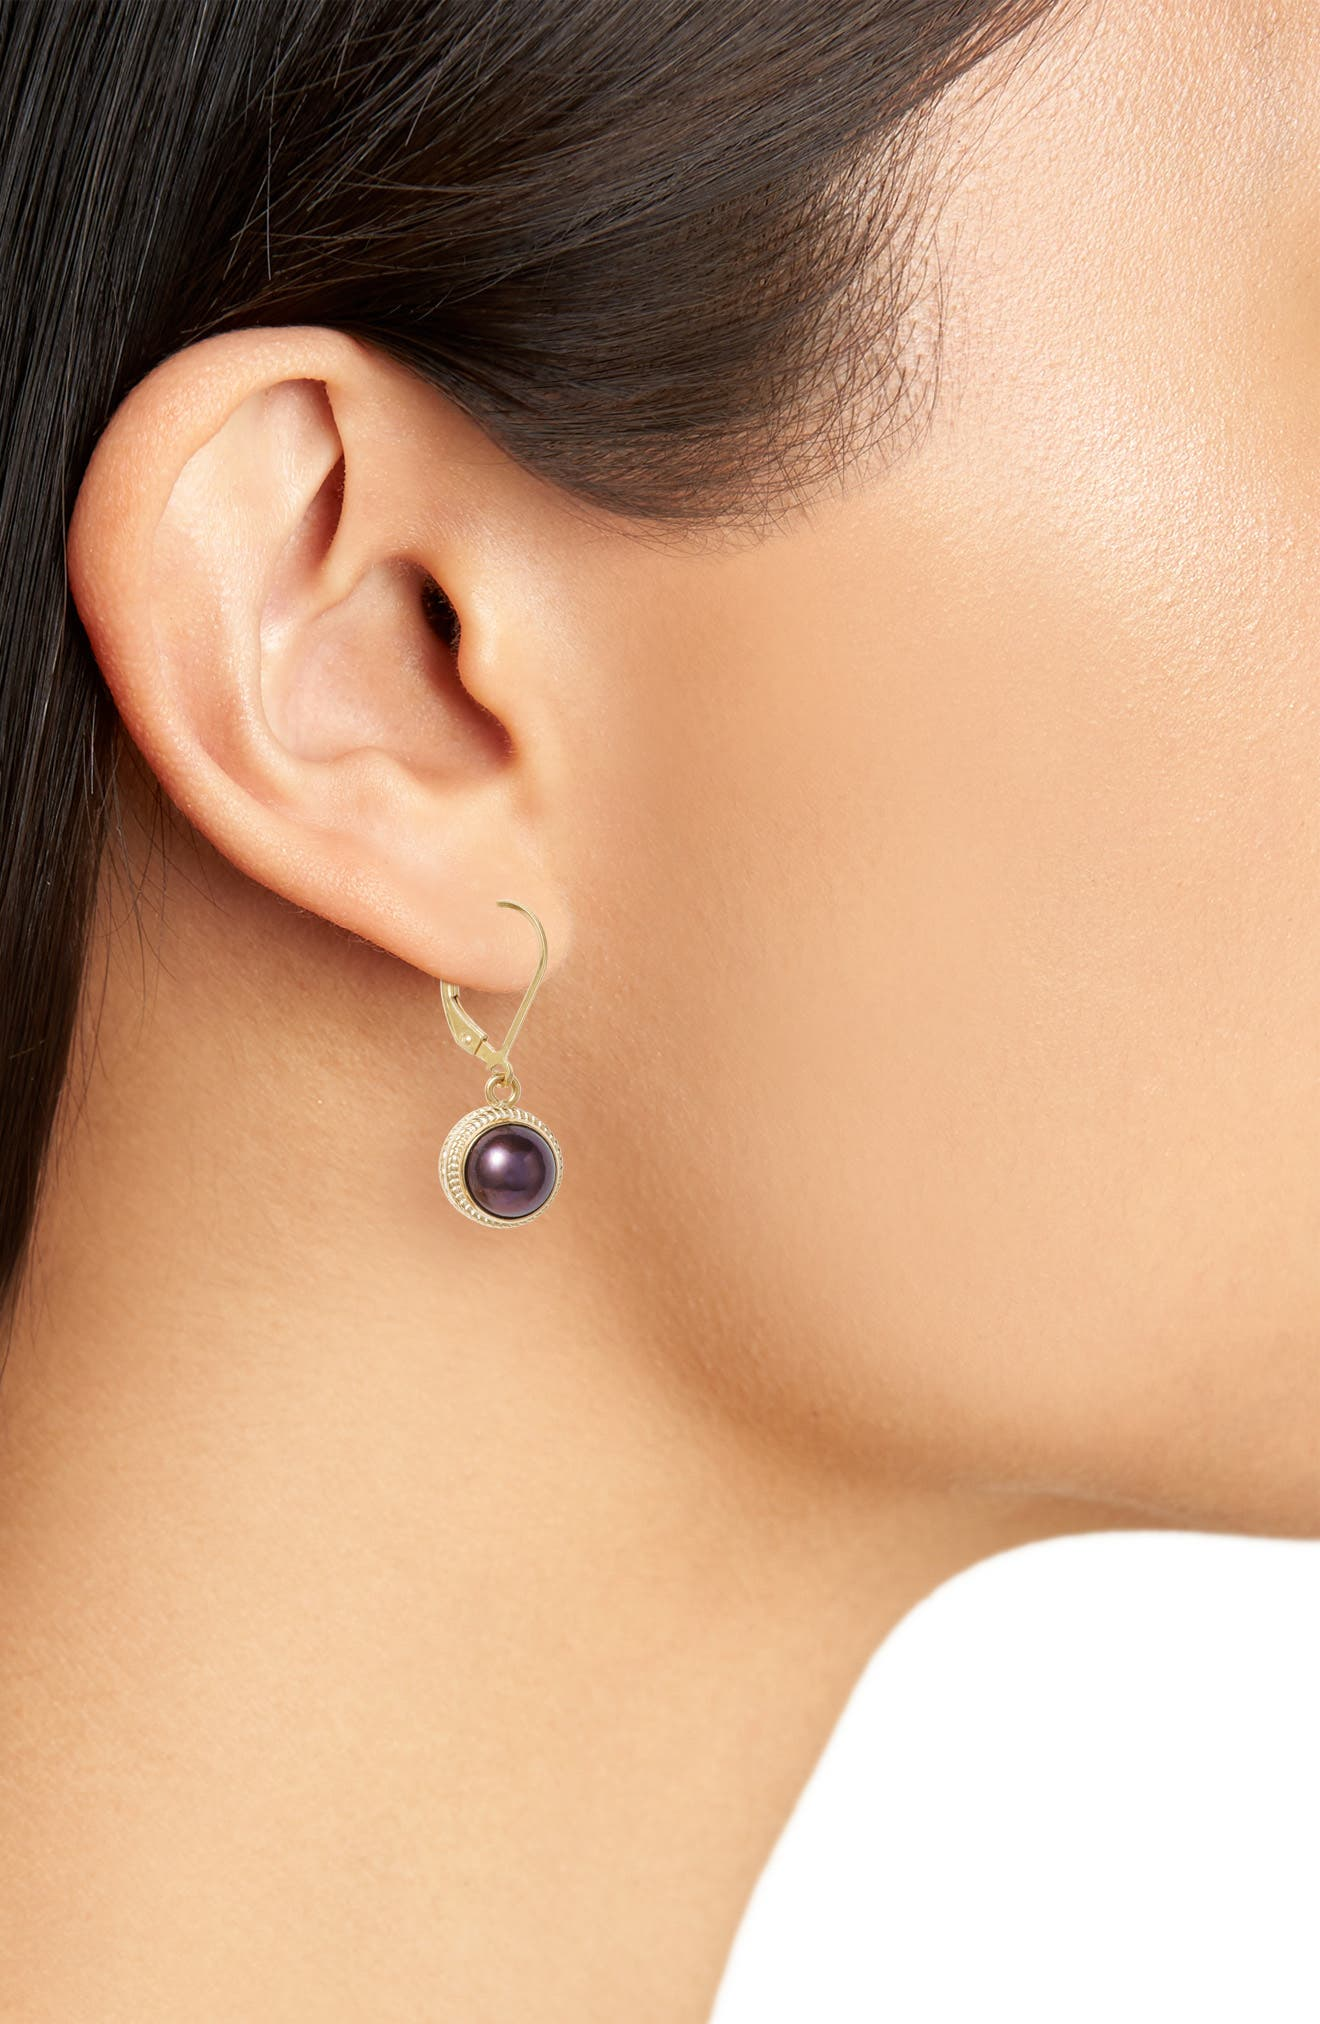 Genuine Blue Pearl Drop Earrings,                             Alternate thumbnail 2, color,                             400